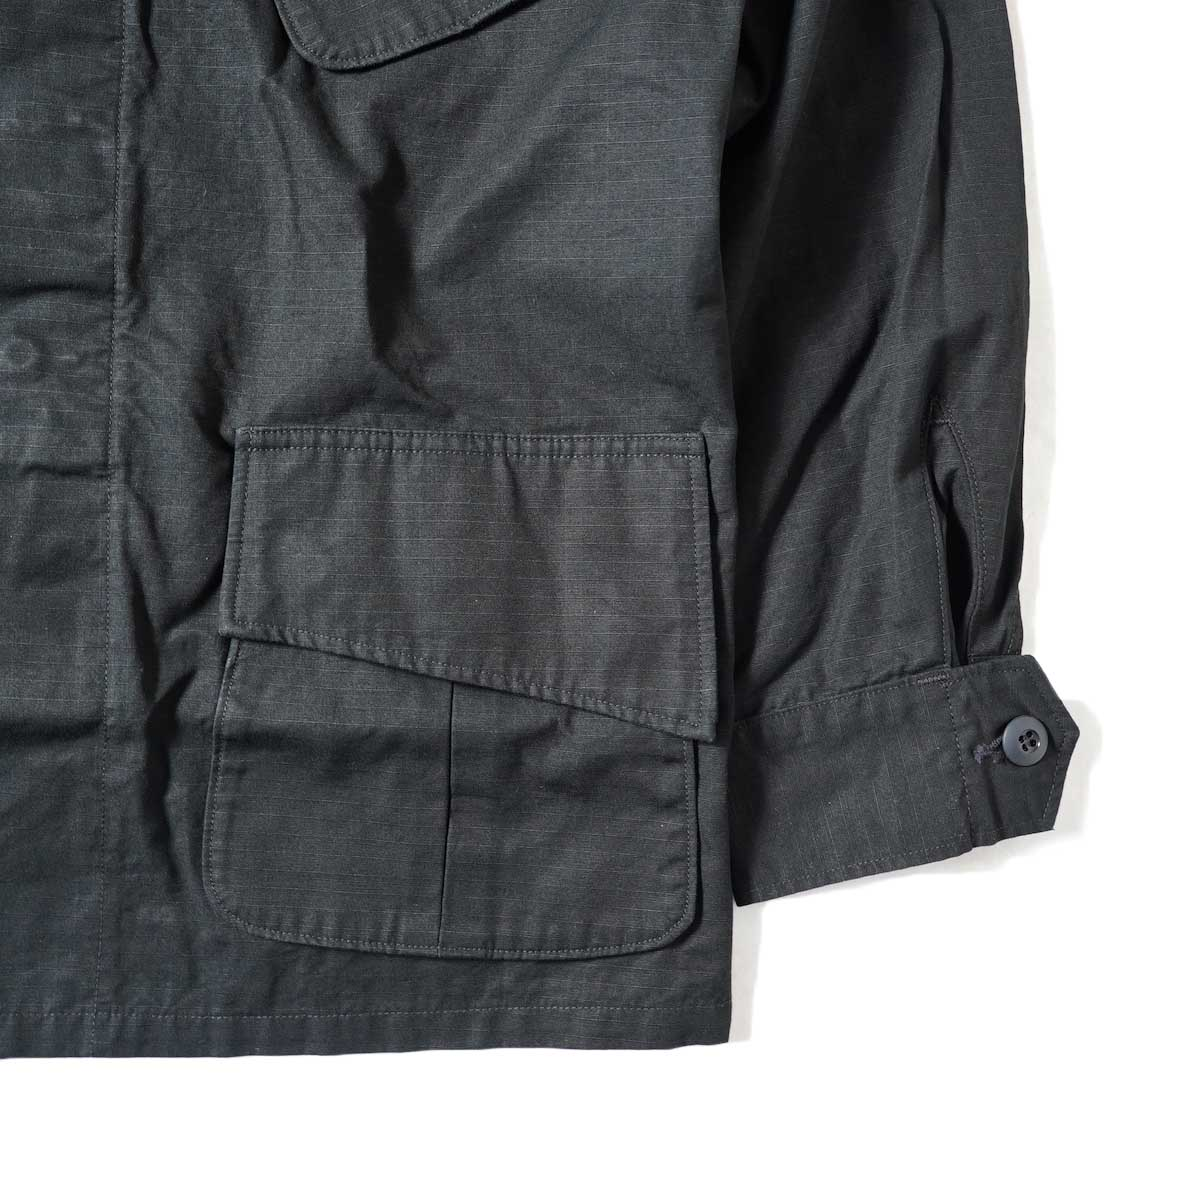 orSlow / US Army Tropical Jacket (Black Rip Stop) 裾、袖